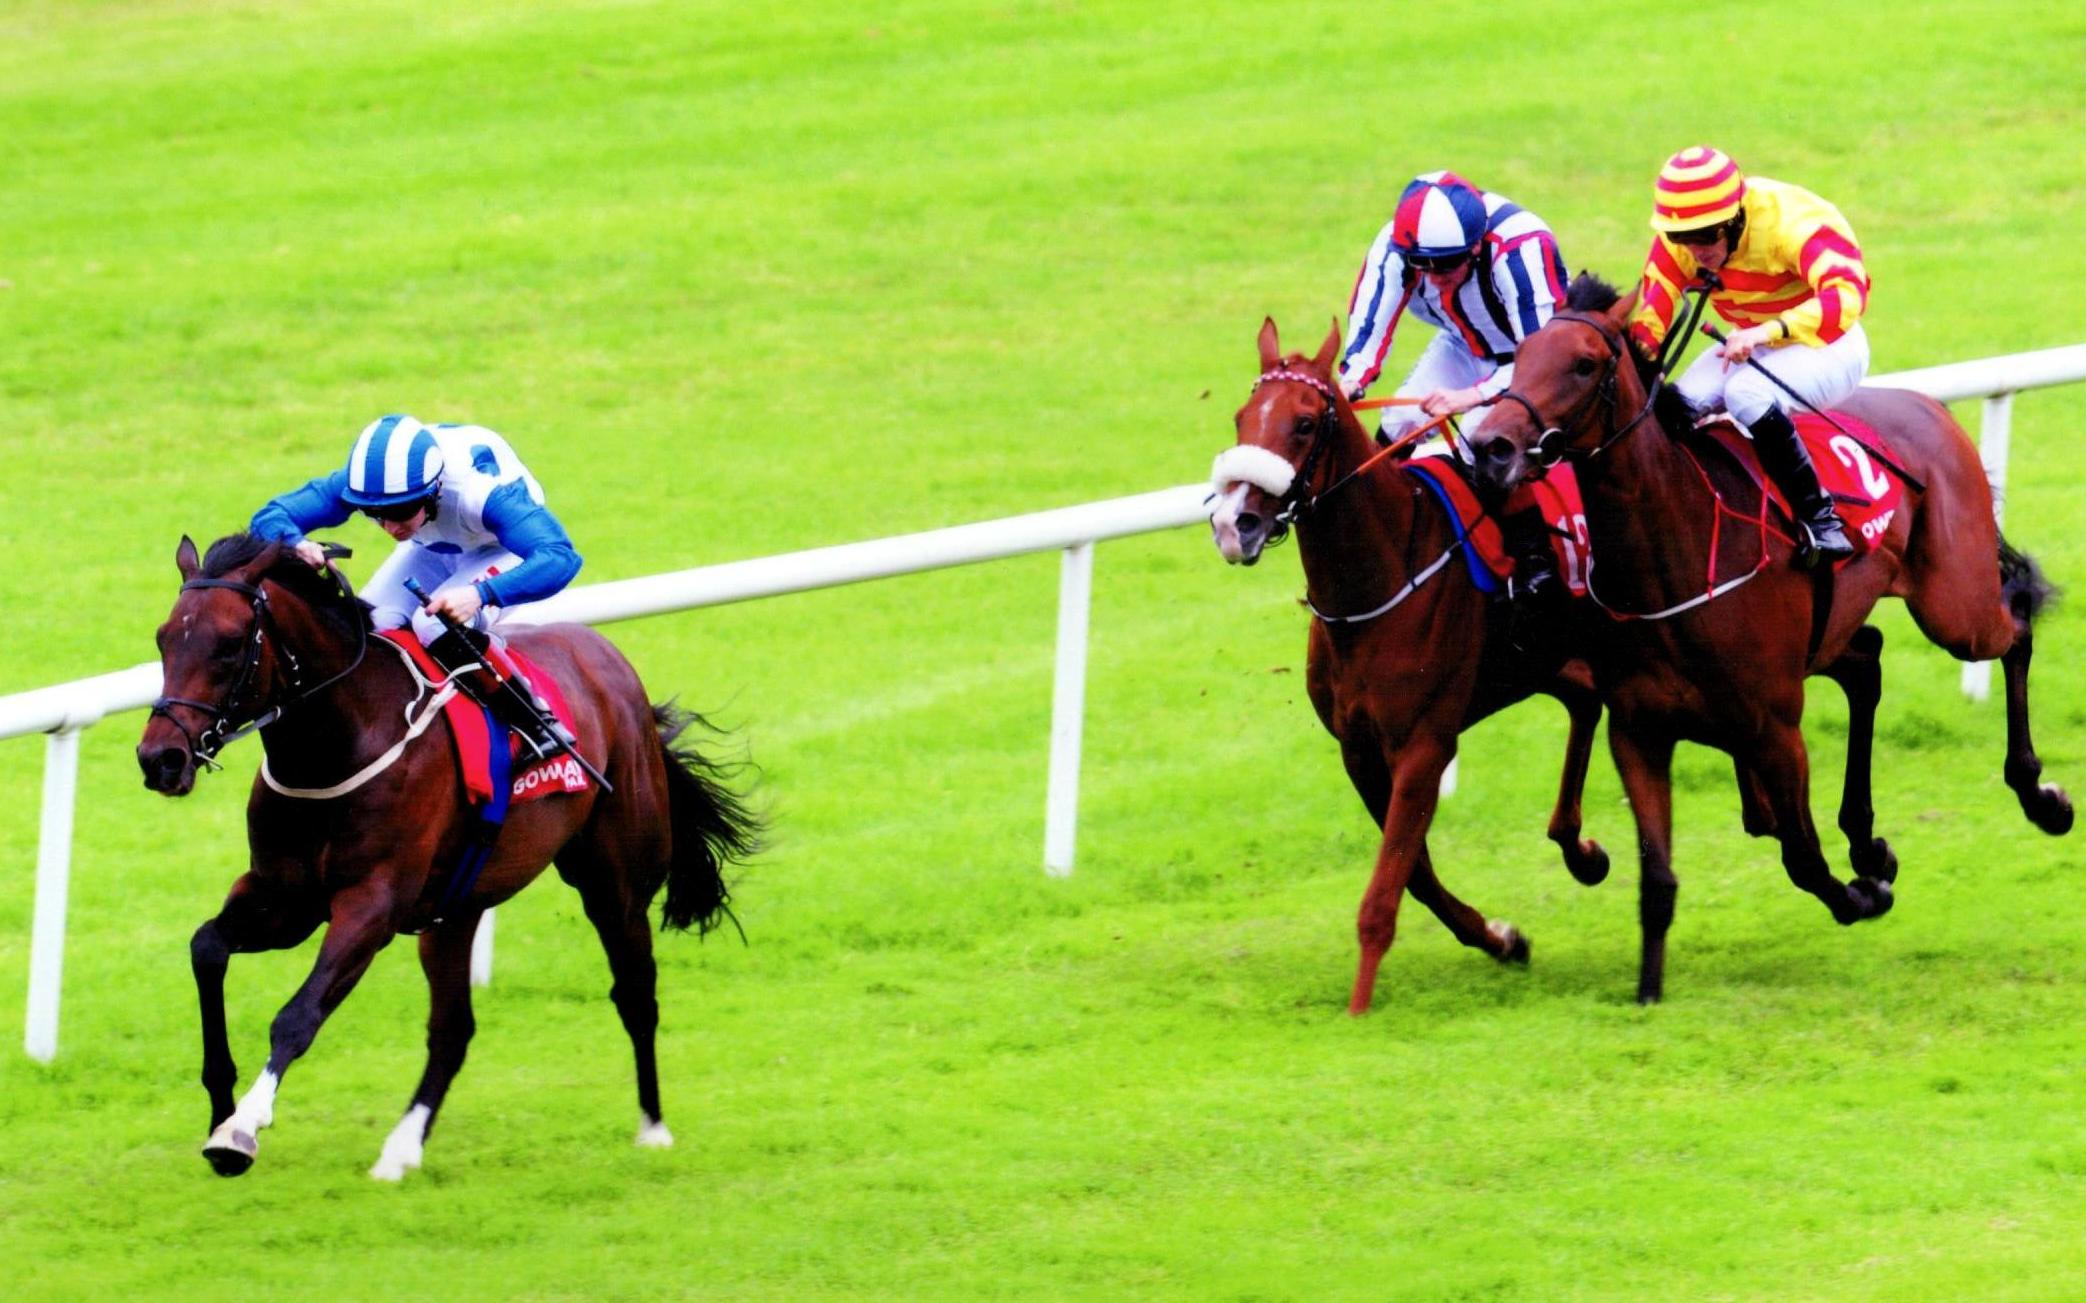 MASUCCI winning his maiden in fine style at Gowran Park 4th July 2017